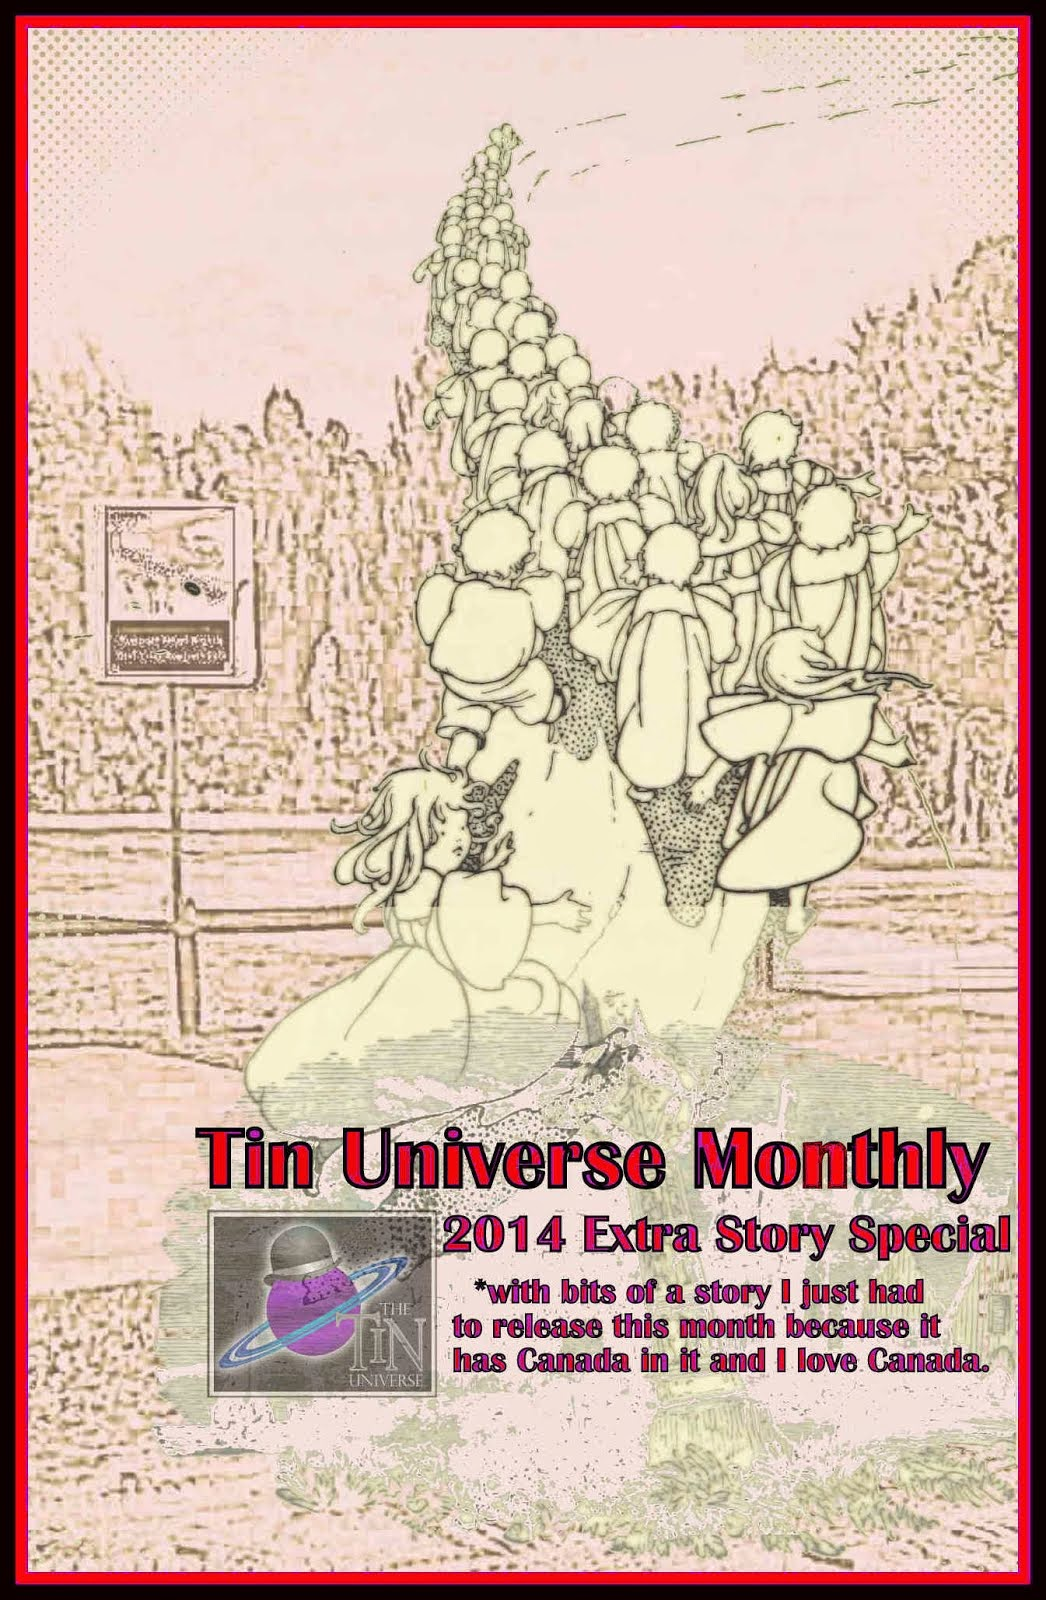 Tin Universe Monthly 2014 Extra Stuff In April Special